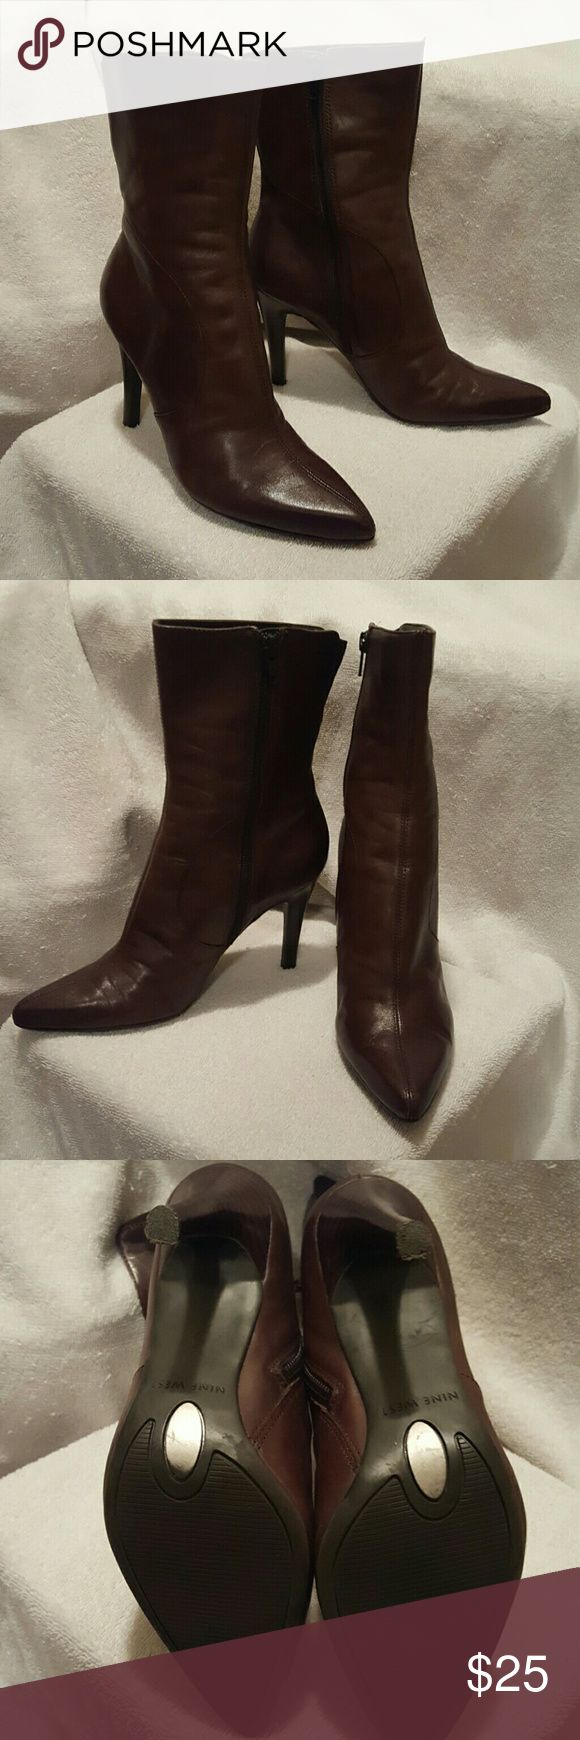 Nine West Women's Brown Leather Boots size 7 Womens Brown Short Brown Leather Pointed Dress Boots Nine West Shoes Winter & Rain Boots